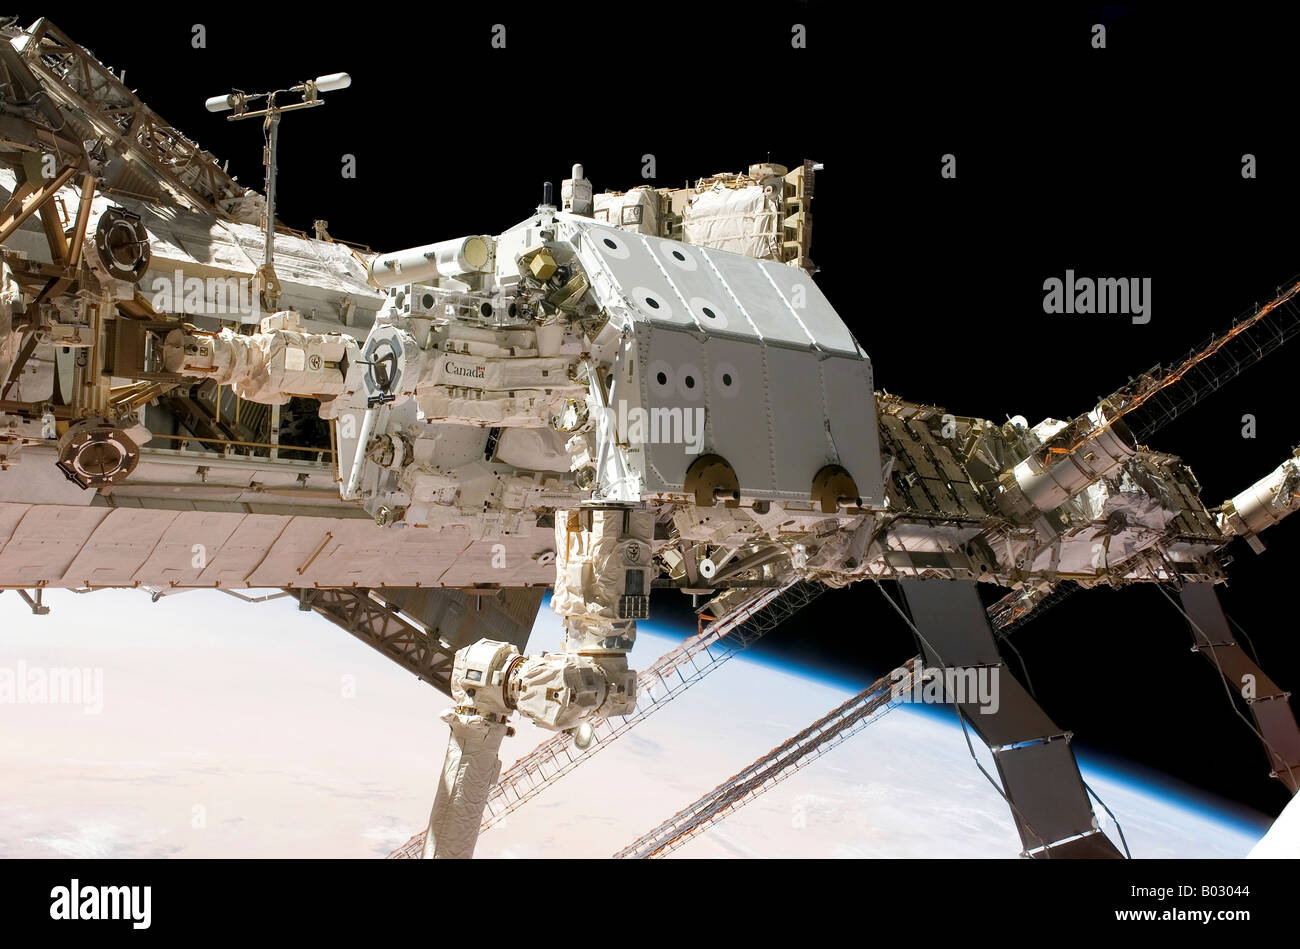 The Canadian-built Dextre robotic system is moved to its place on a station truss. - Stock Image